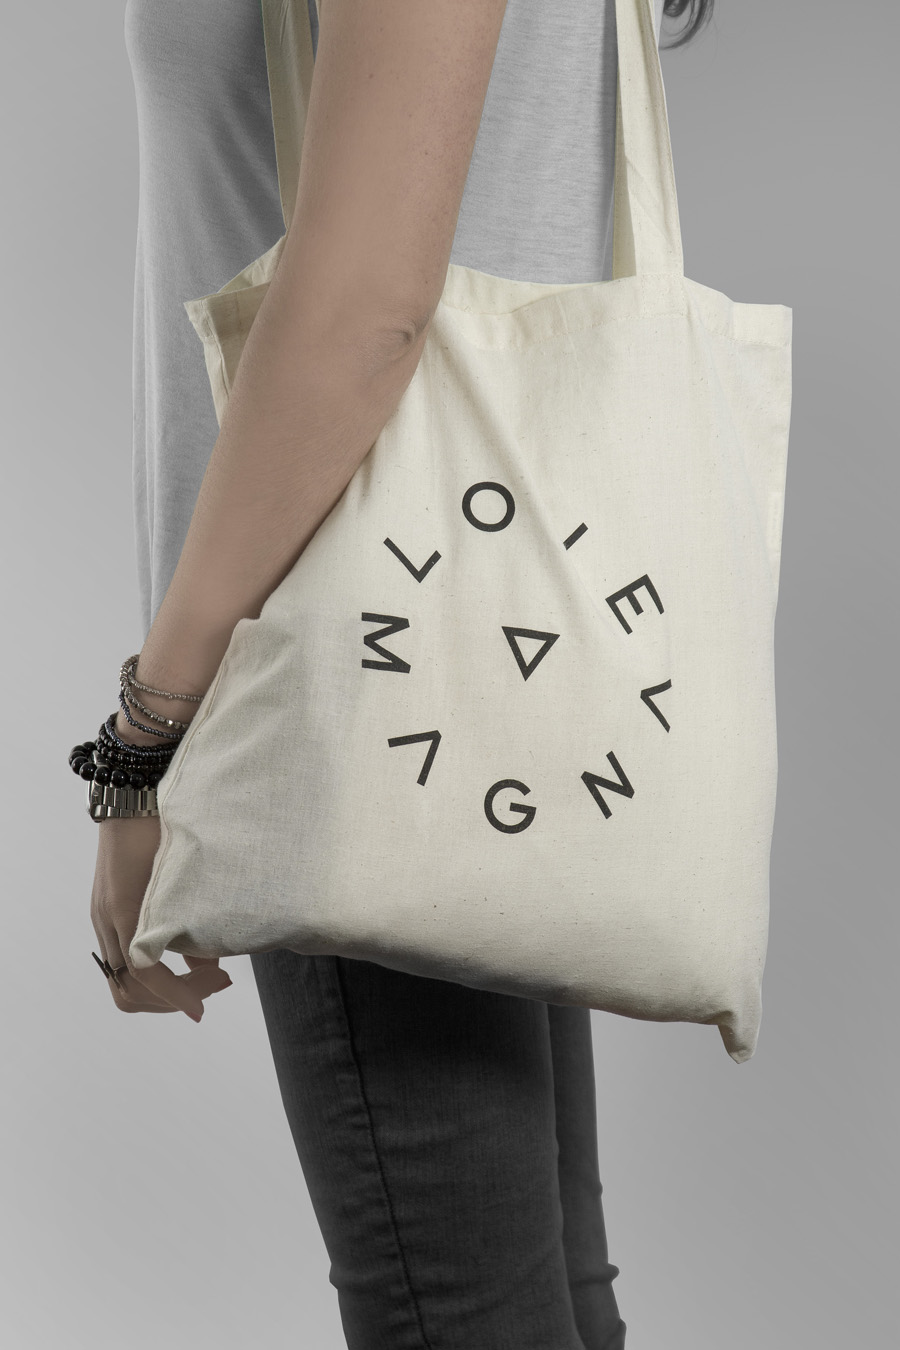 Logo and tote with screen print detail for production studio Love Magna designed by Musa WorkLabs